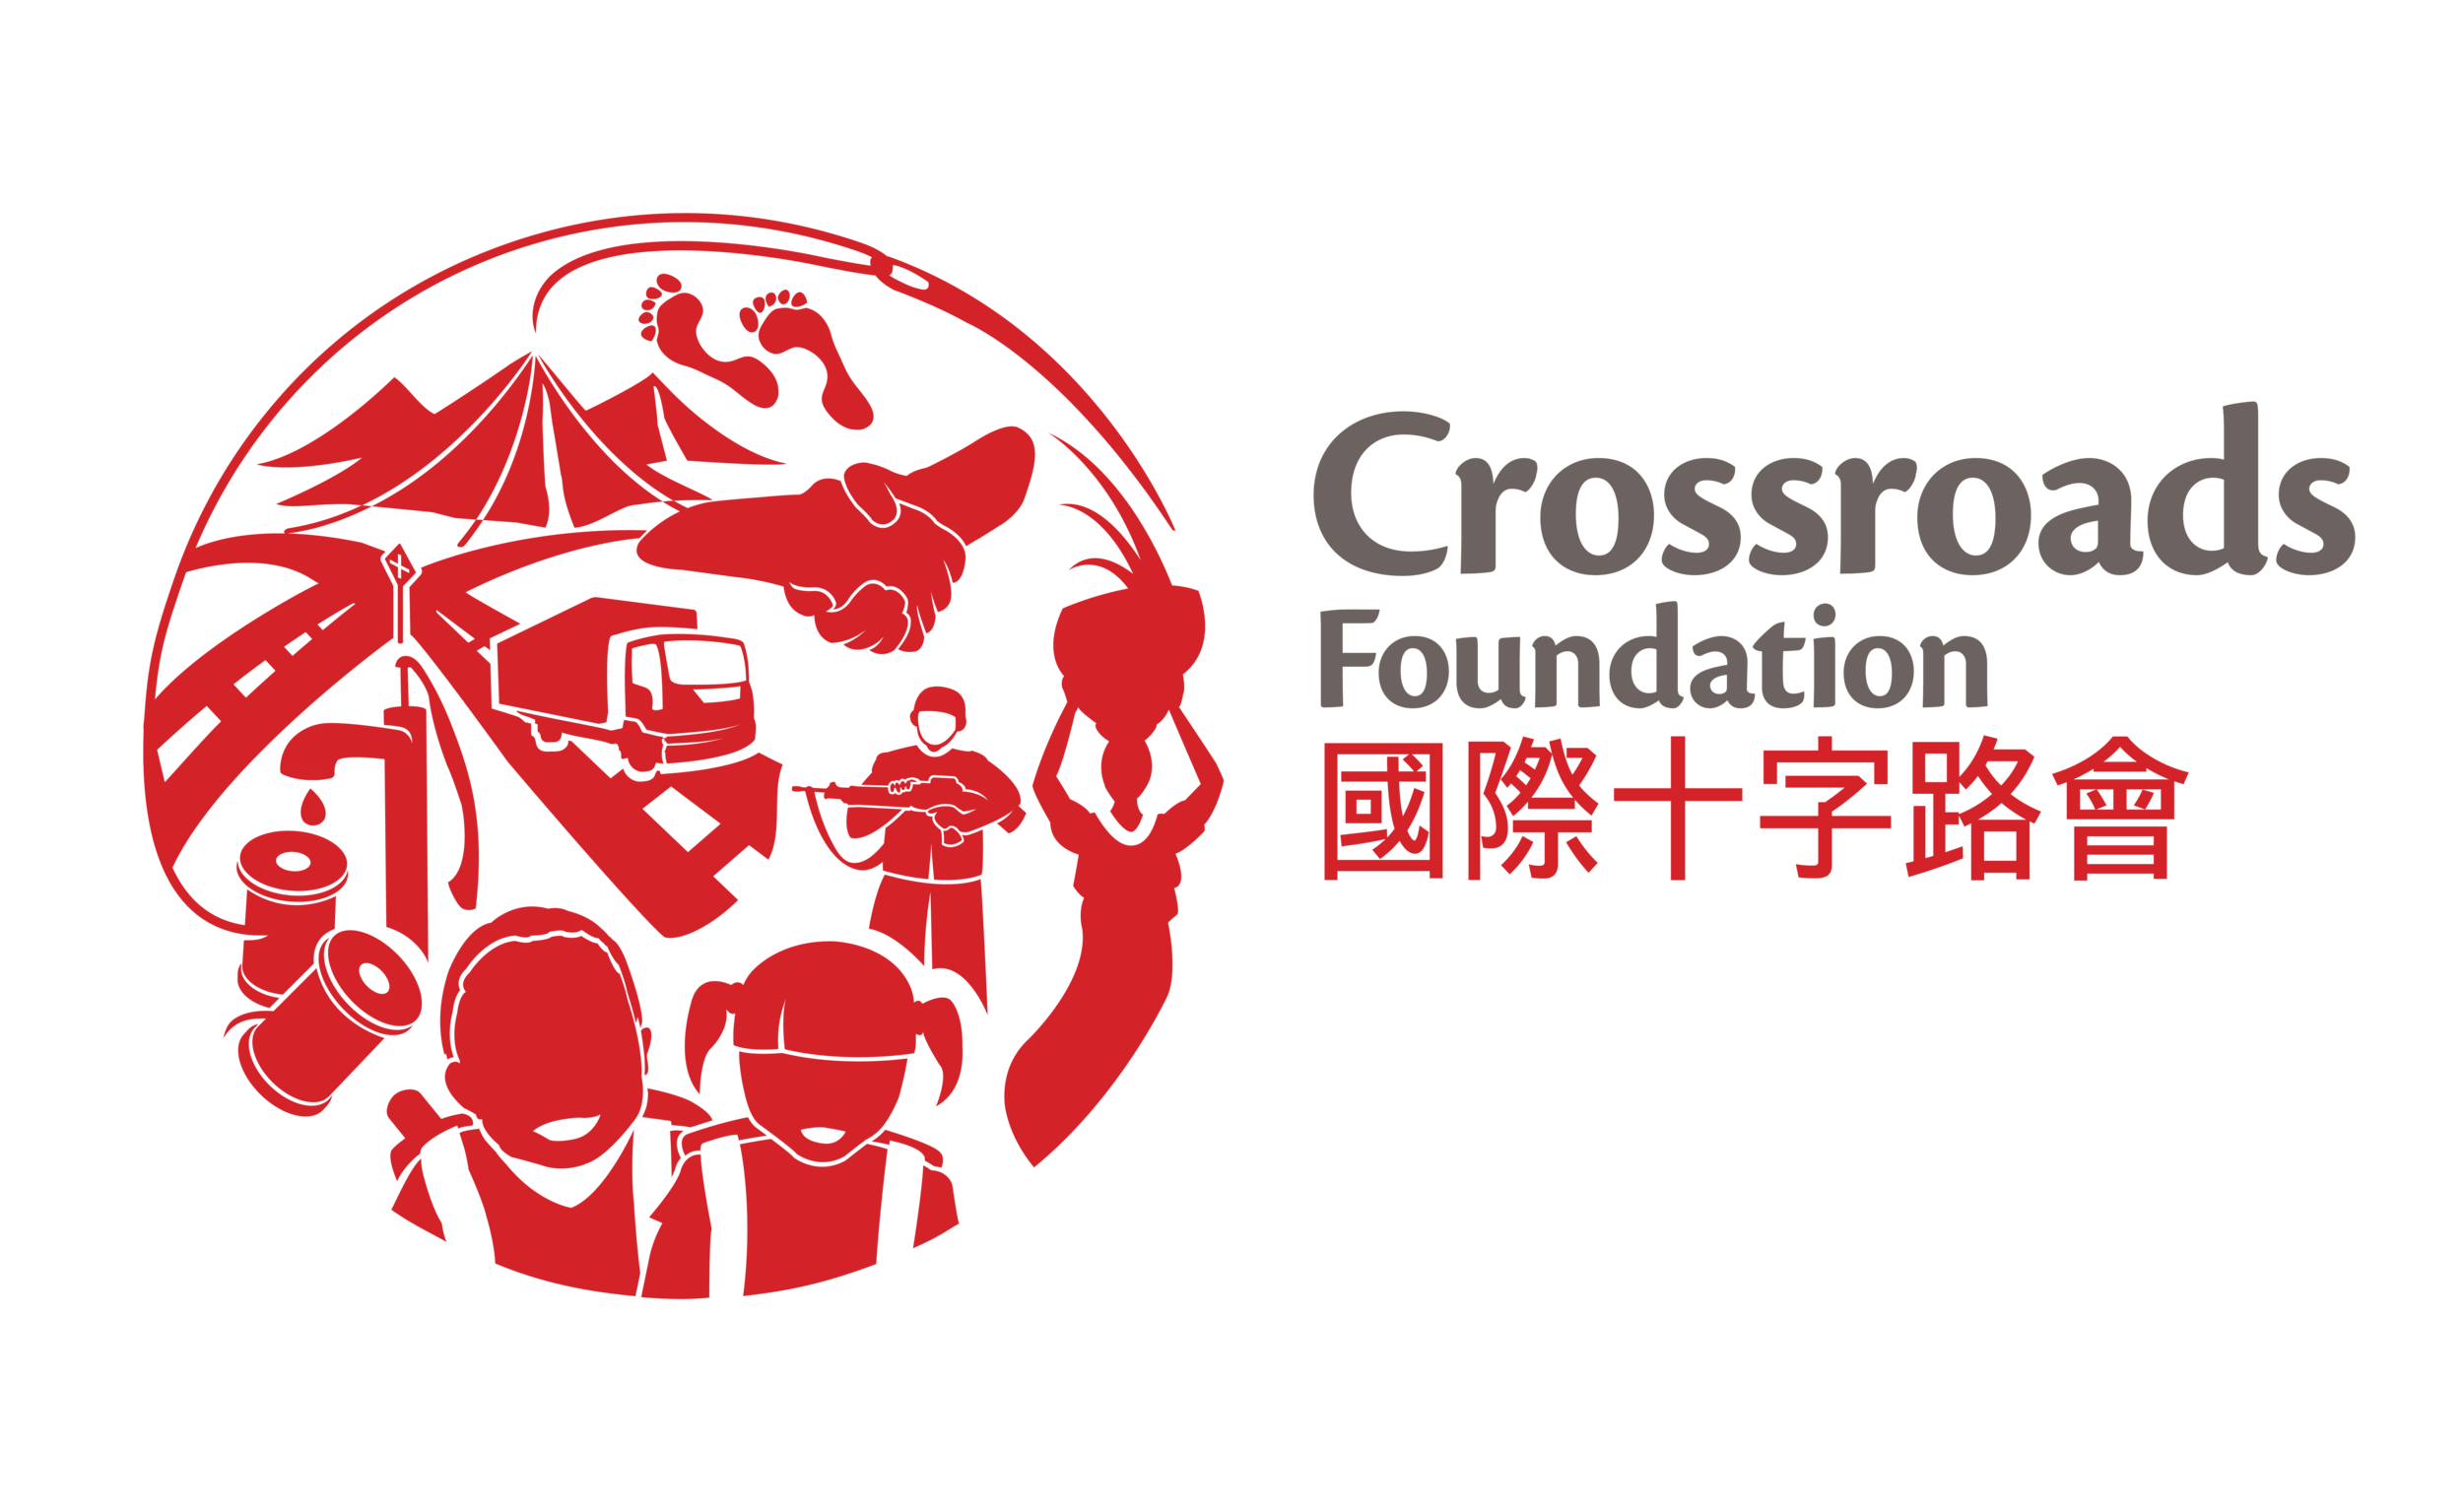 Crossroads Foundation HK